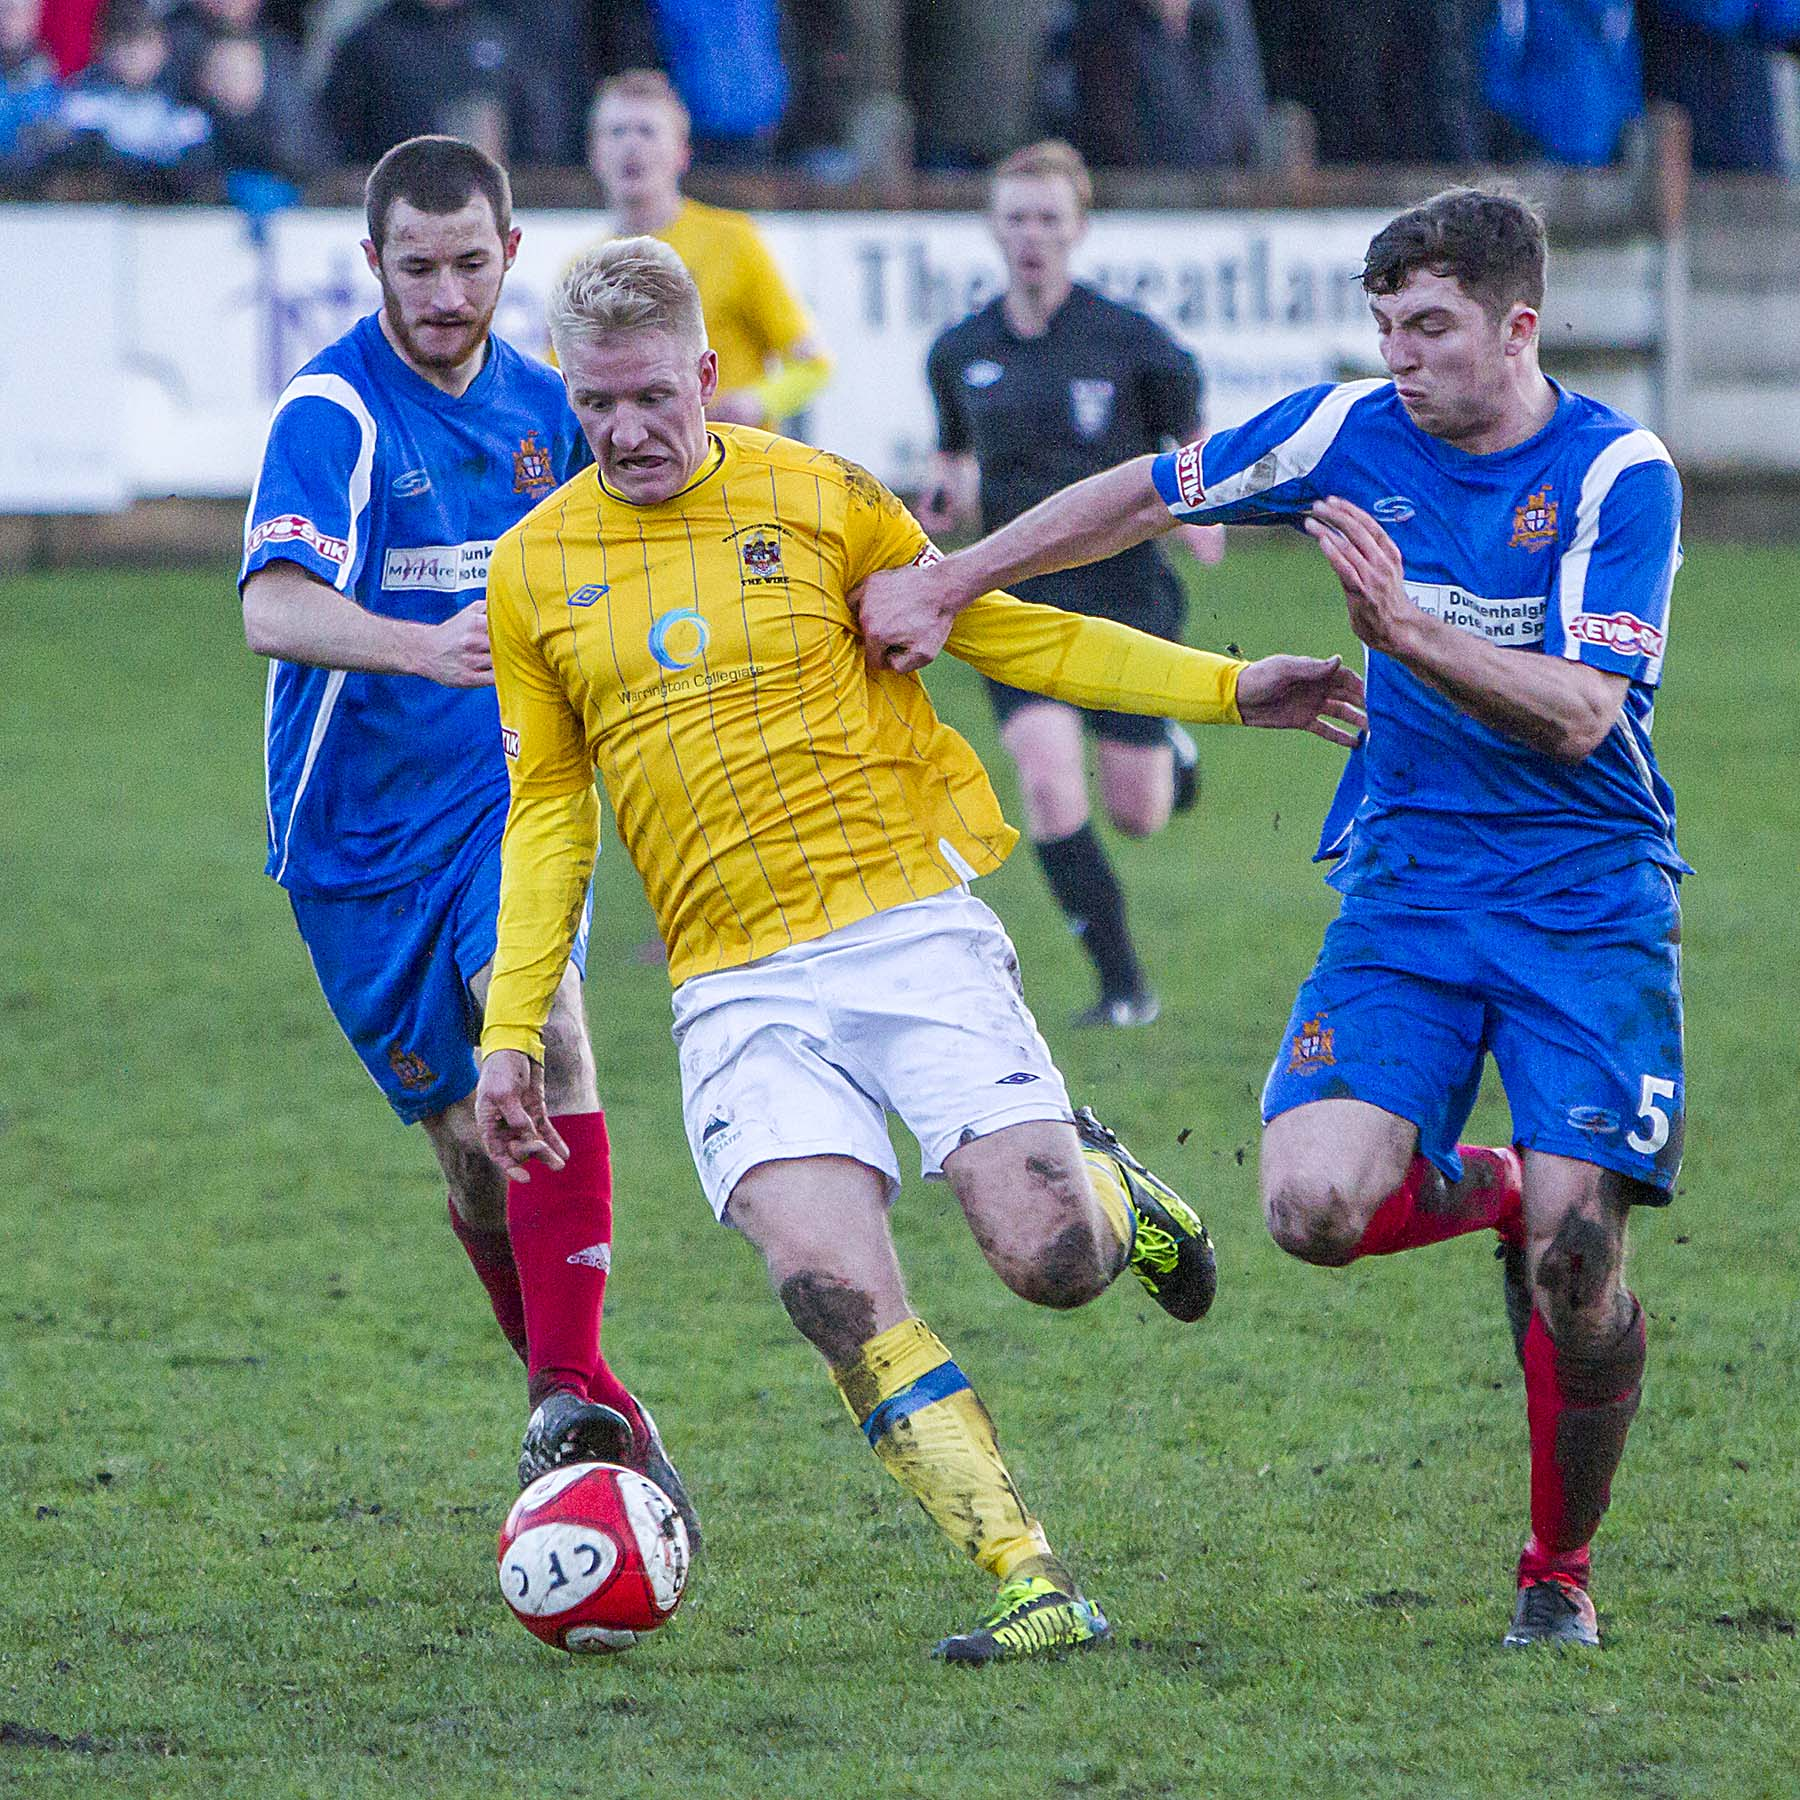 Ben Wharton back in action for Warrington Town at Clitheroe. Picture by John Hopkins